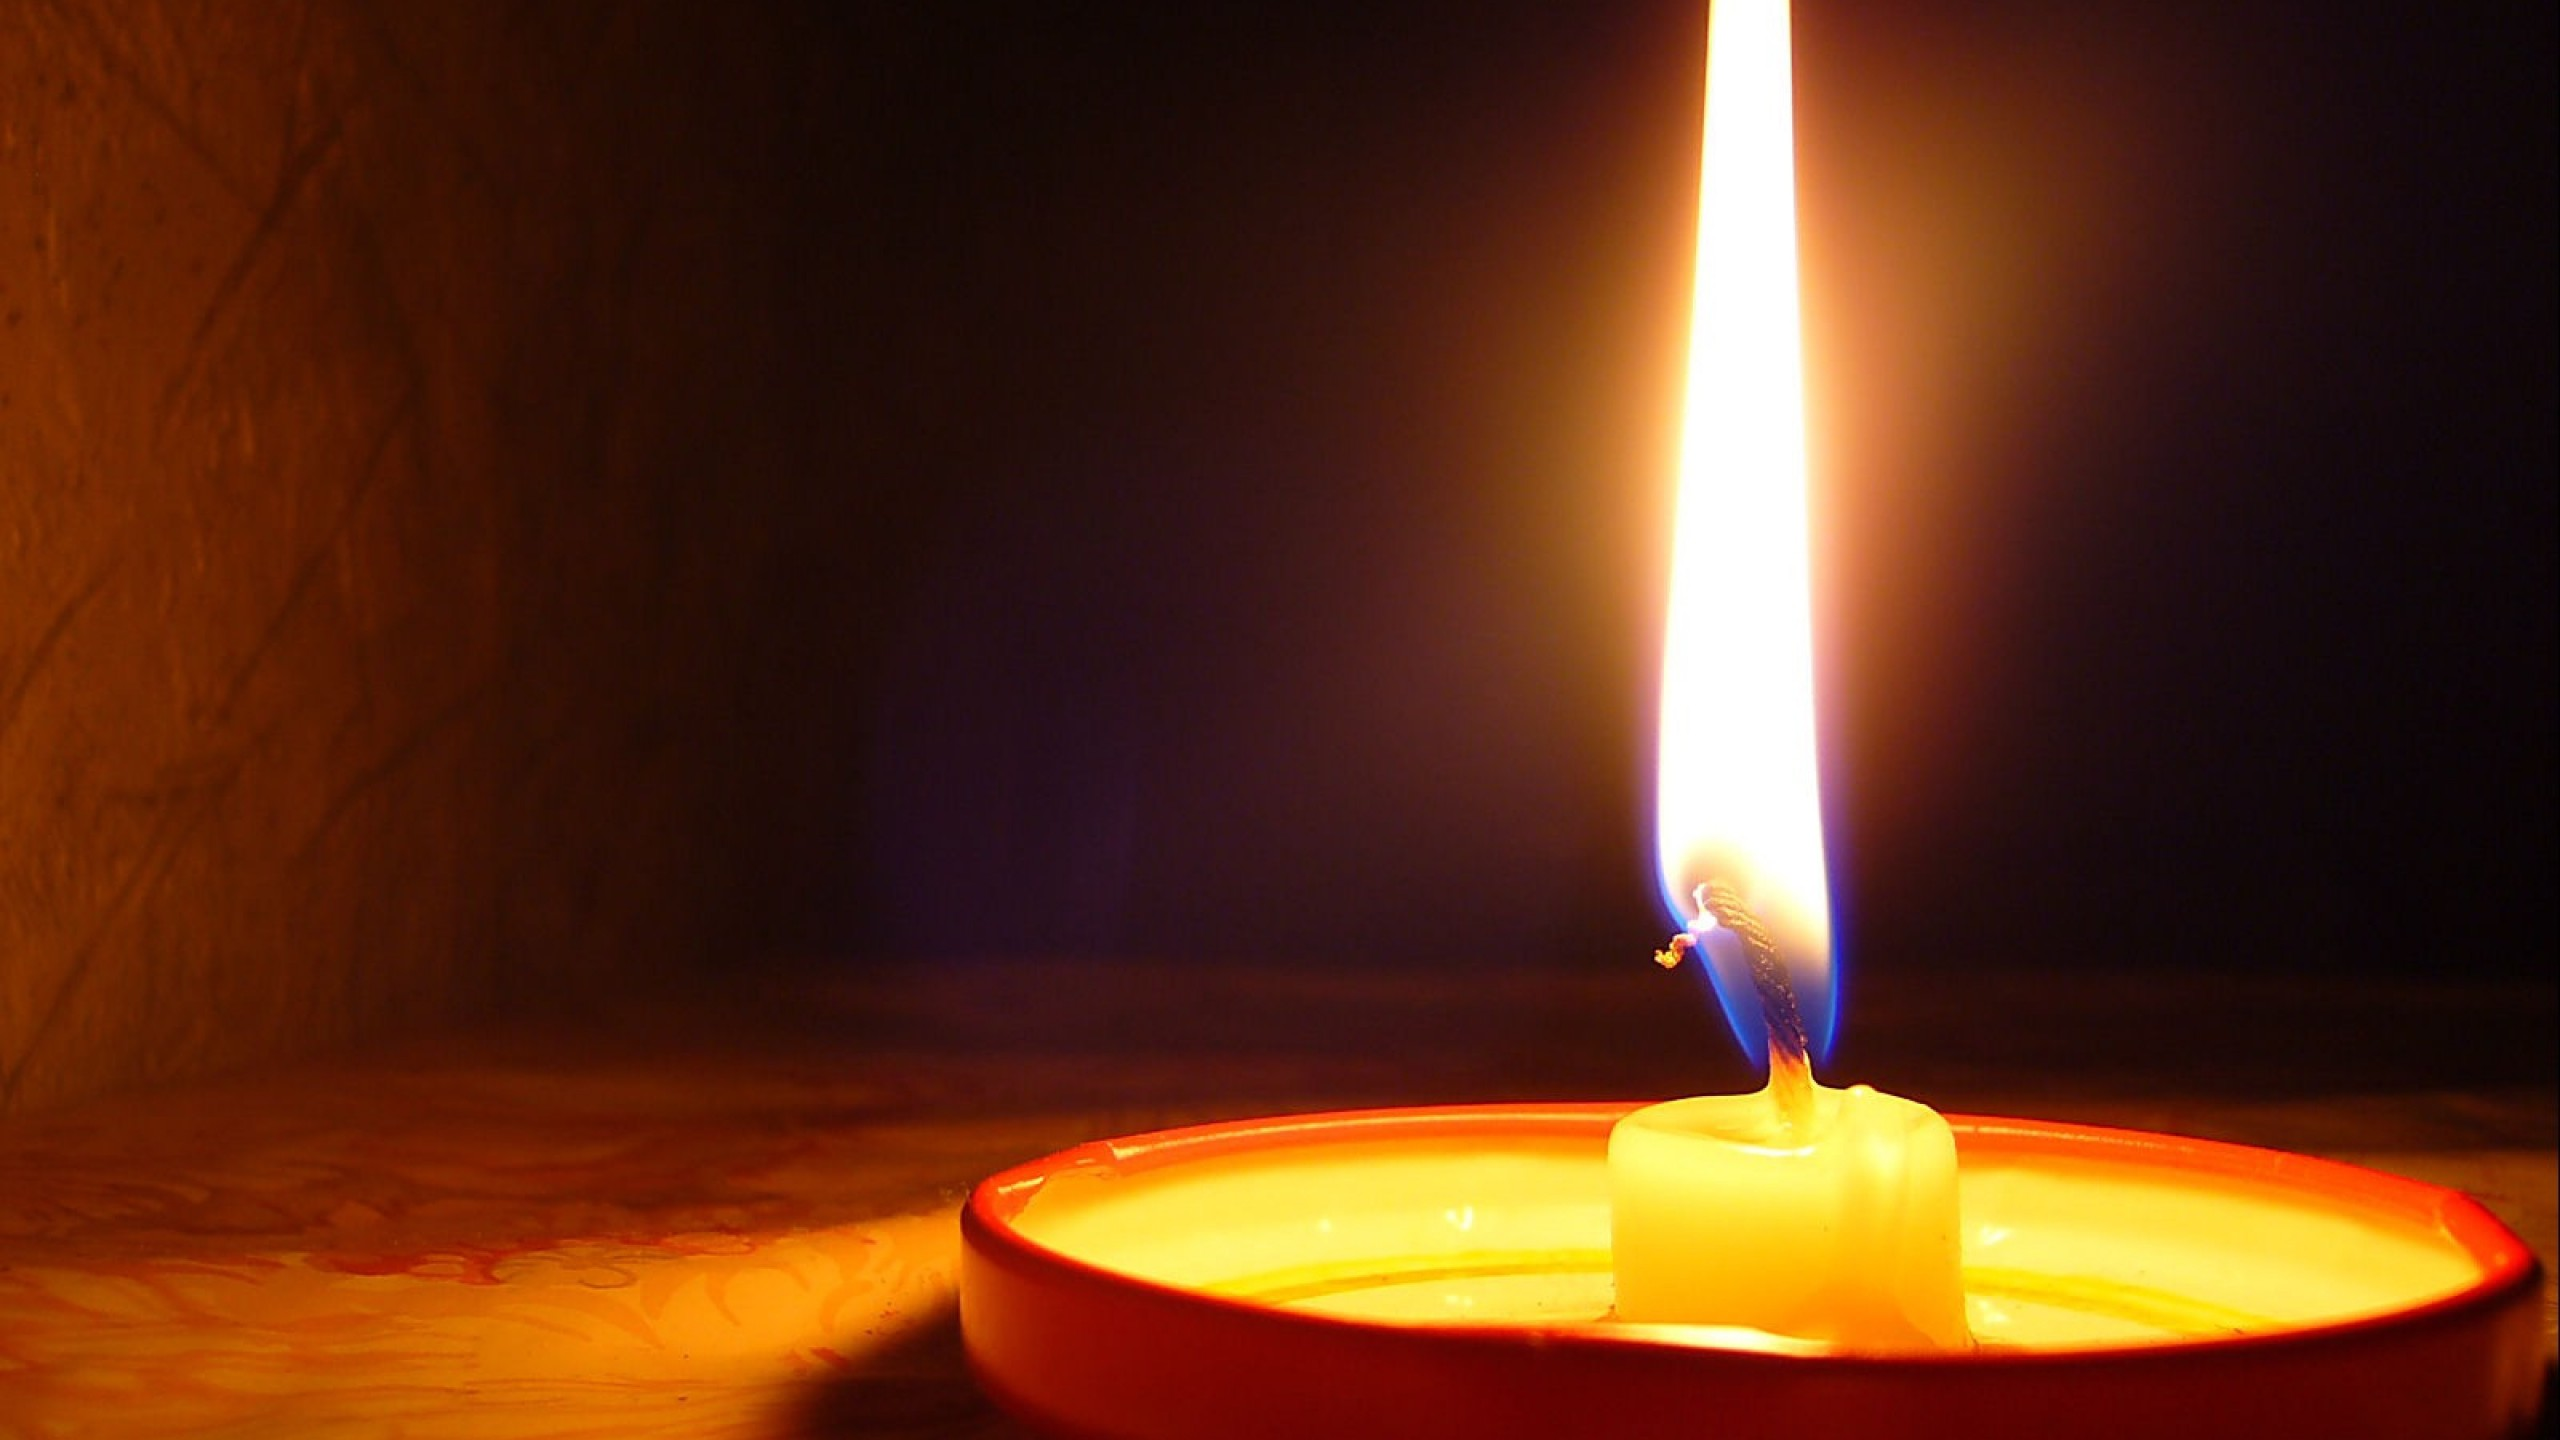 Cool Candle Wallpaper 41075 1680x1050 px